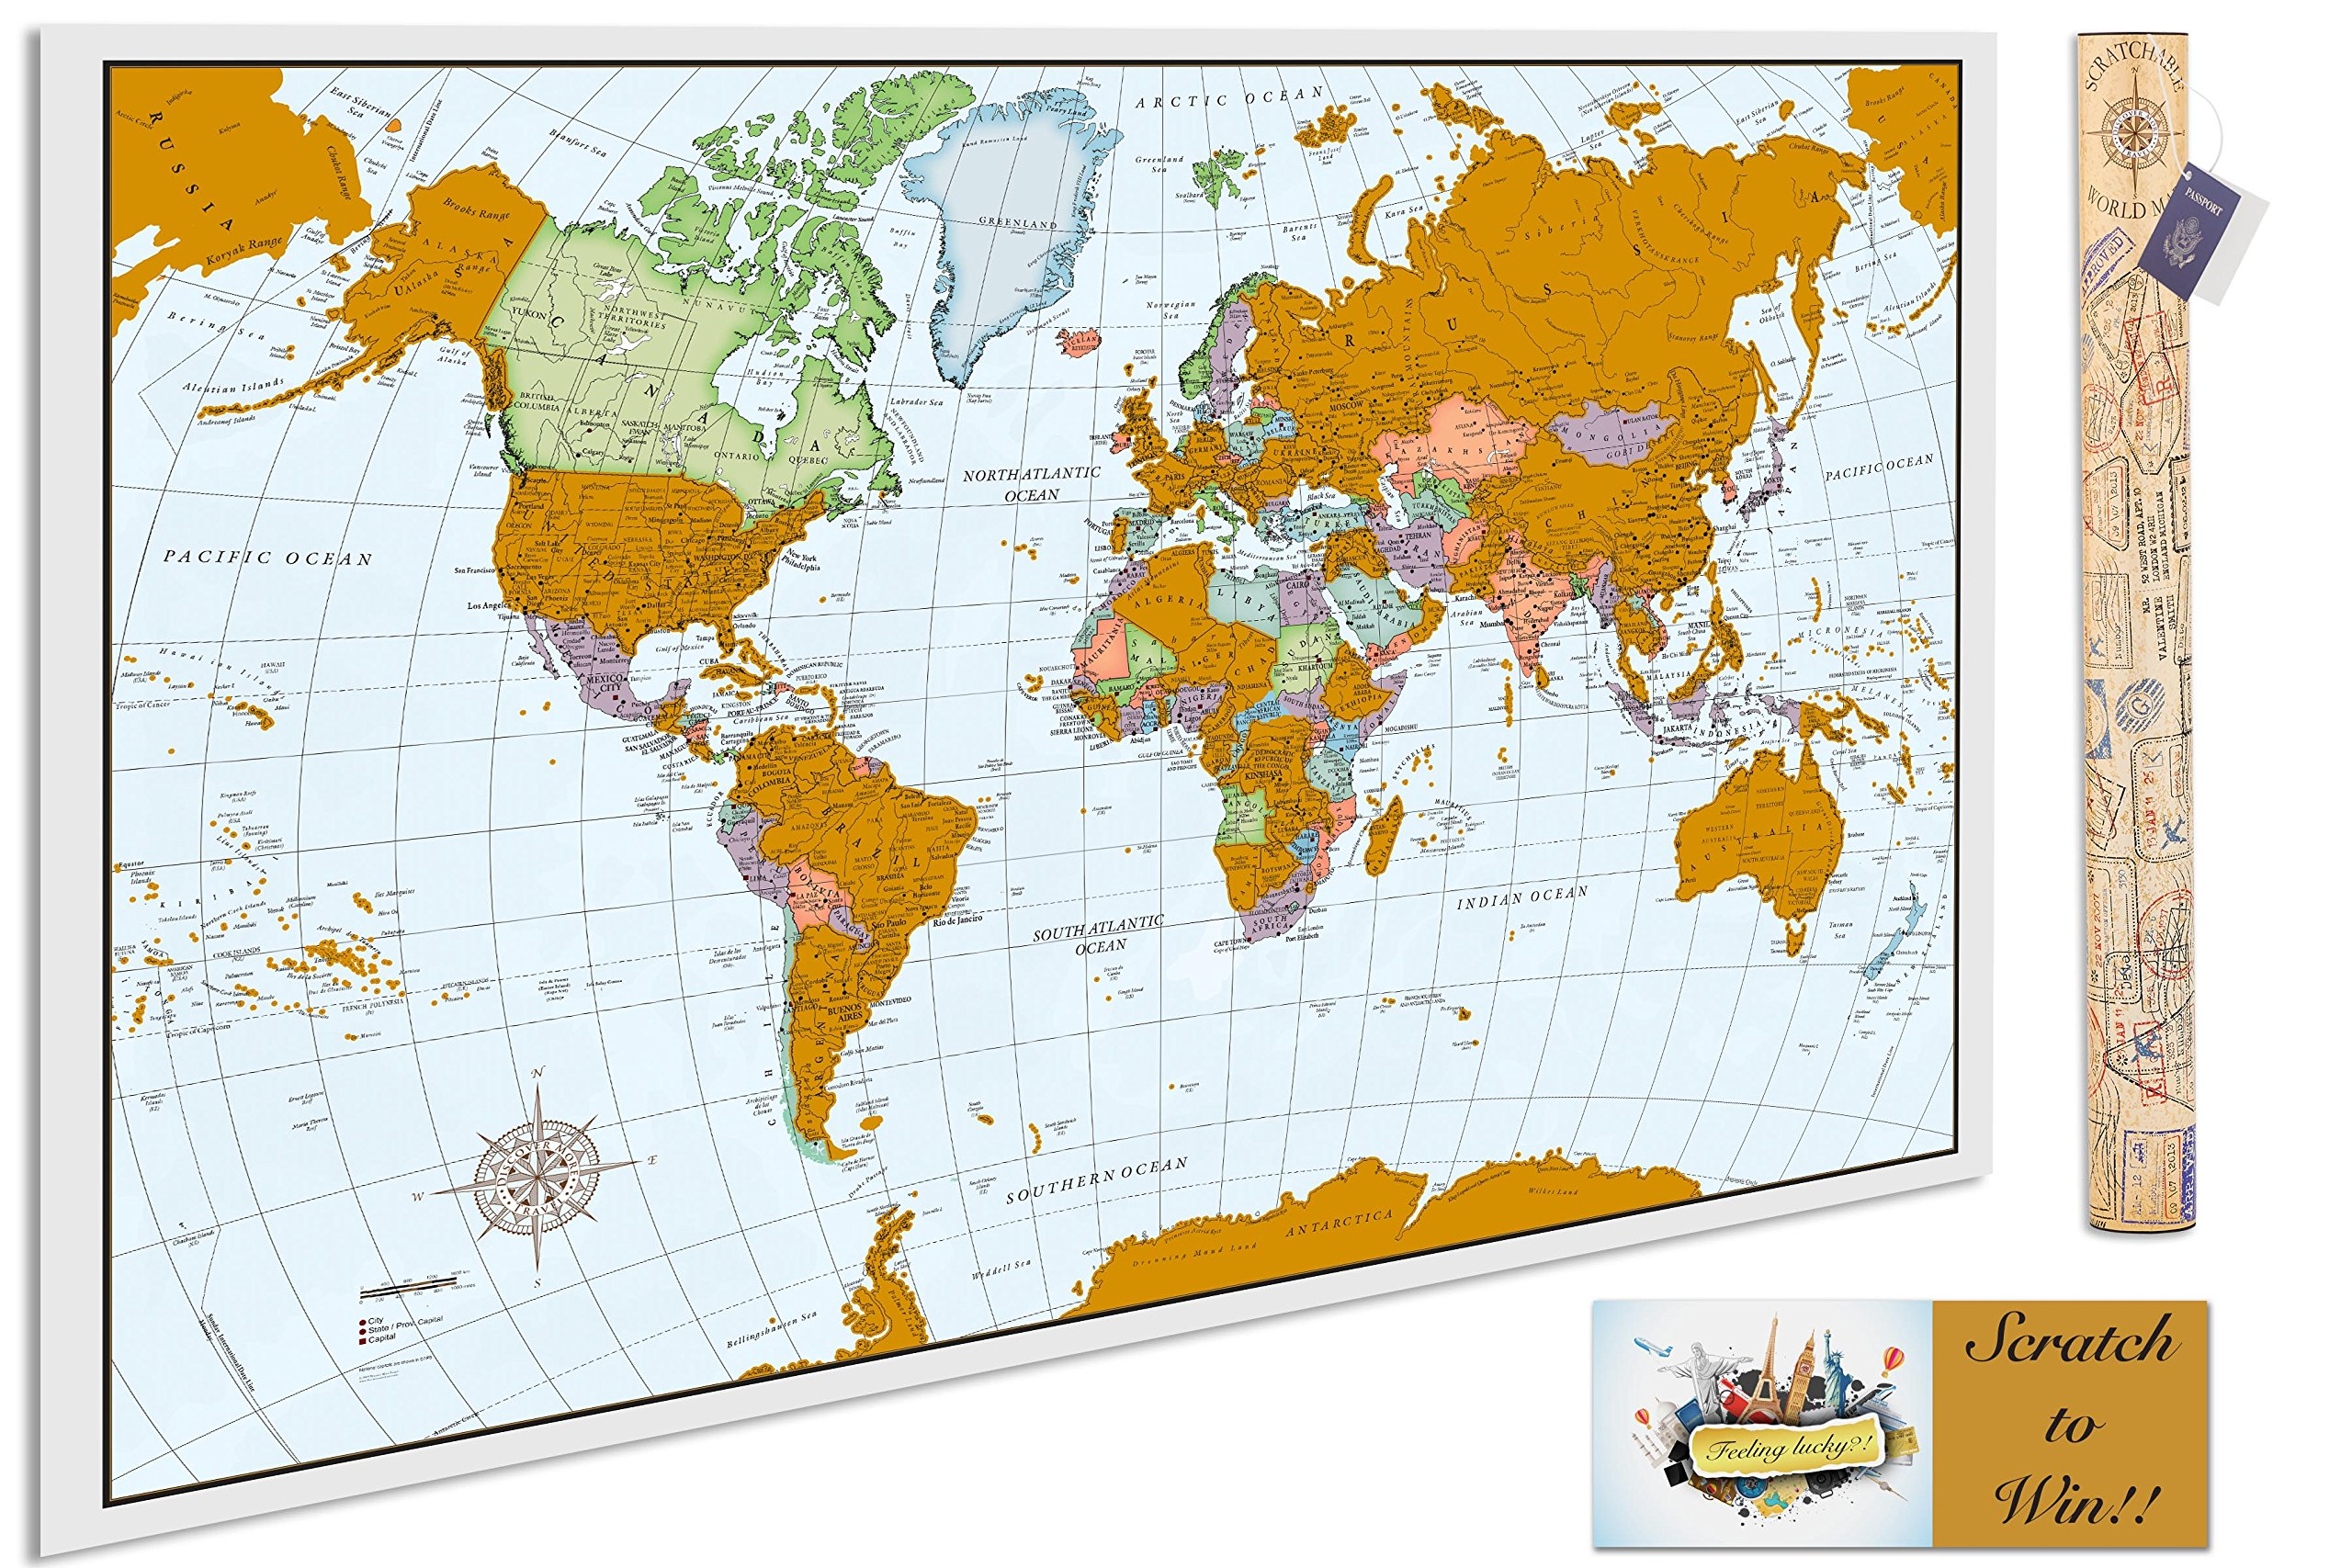 Scratchable Poster Map - A Scratch Off World Map That Tracks Your Travels! Vibrant Colors, Detailed Cartography & Cutting Edge Foil Technology. The Perfect Gift For People Who Love To Travel!